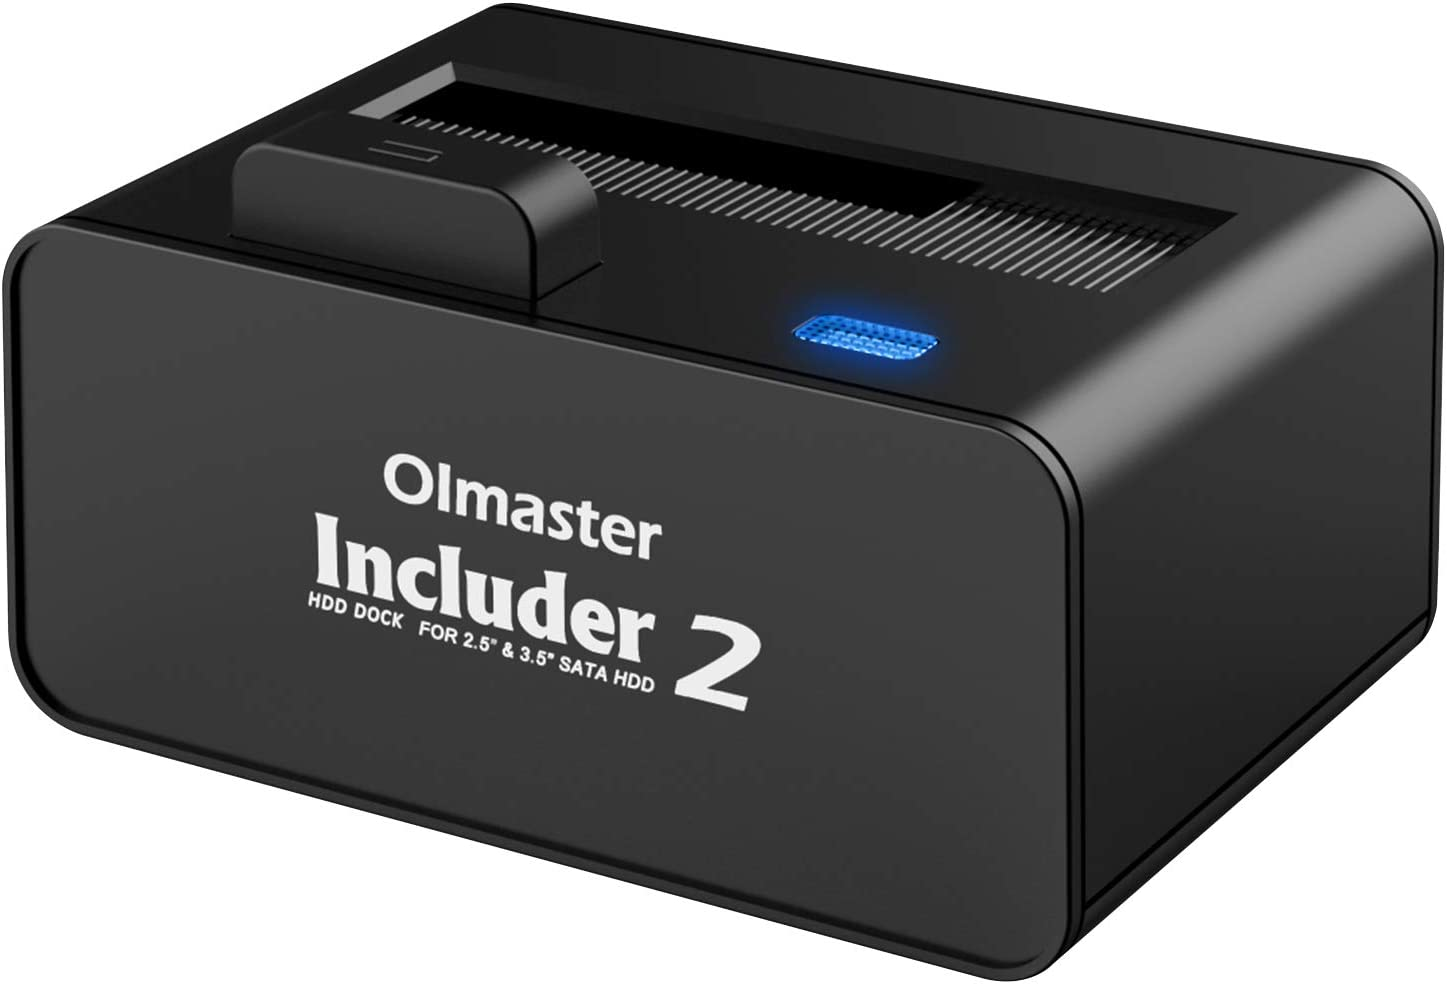 OImaster USB 3.0 to SATA Hard Drive Docking Station with Pop Up Button, 2.5 or 3.5-inch HDD SSD External Hard Drive Docking Station Super Speed UASP Supported Tool Free(10TB Support) Black